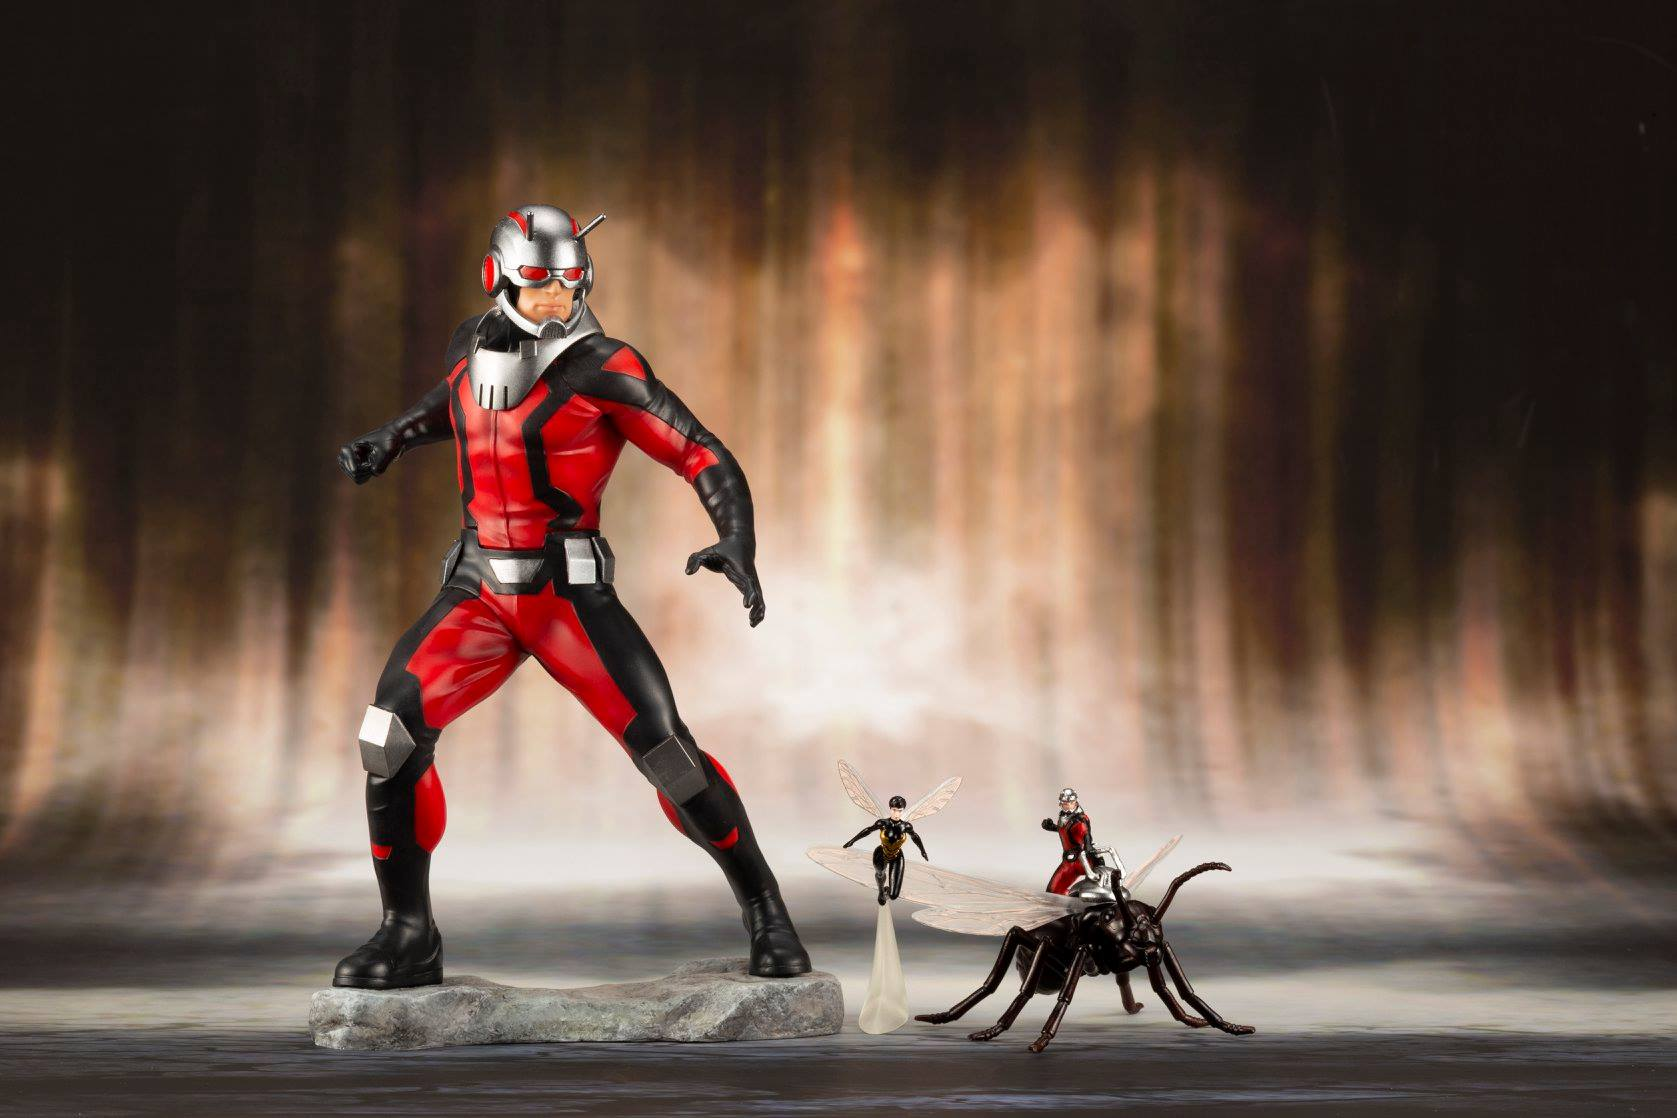 dac2fe6bbcb Kotobukiya - ARTFX+ - Marvel Universe - Ant-Man and The Wasp – Marvelous  Toys